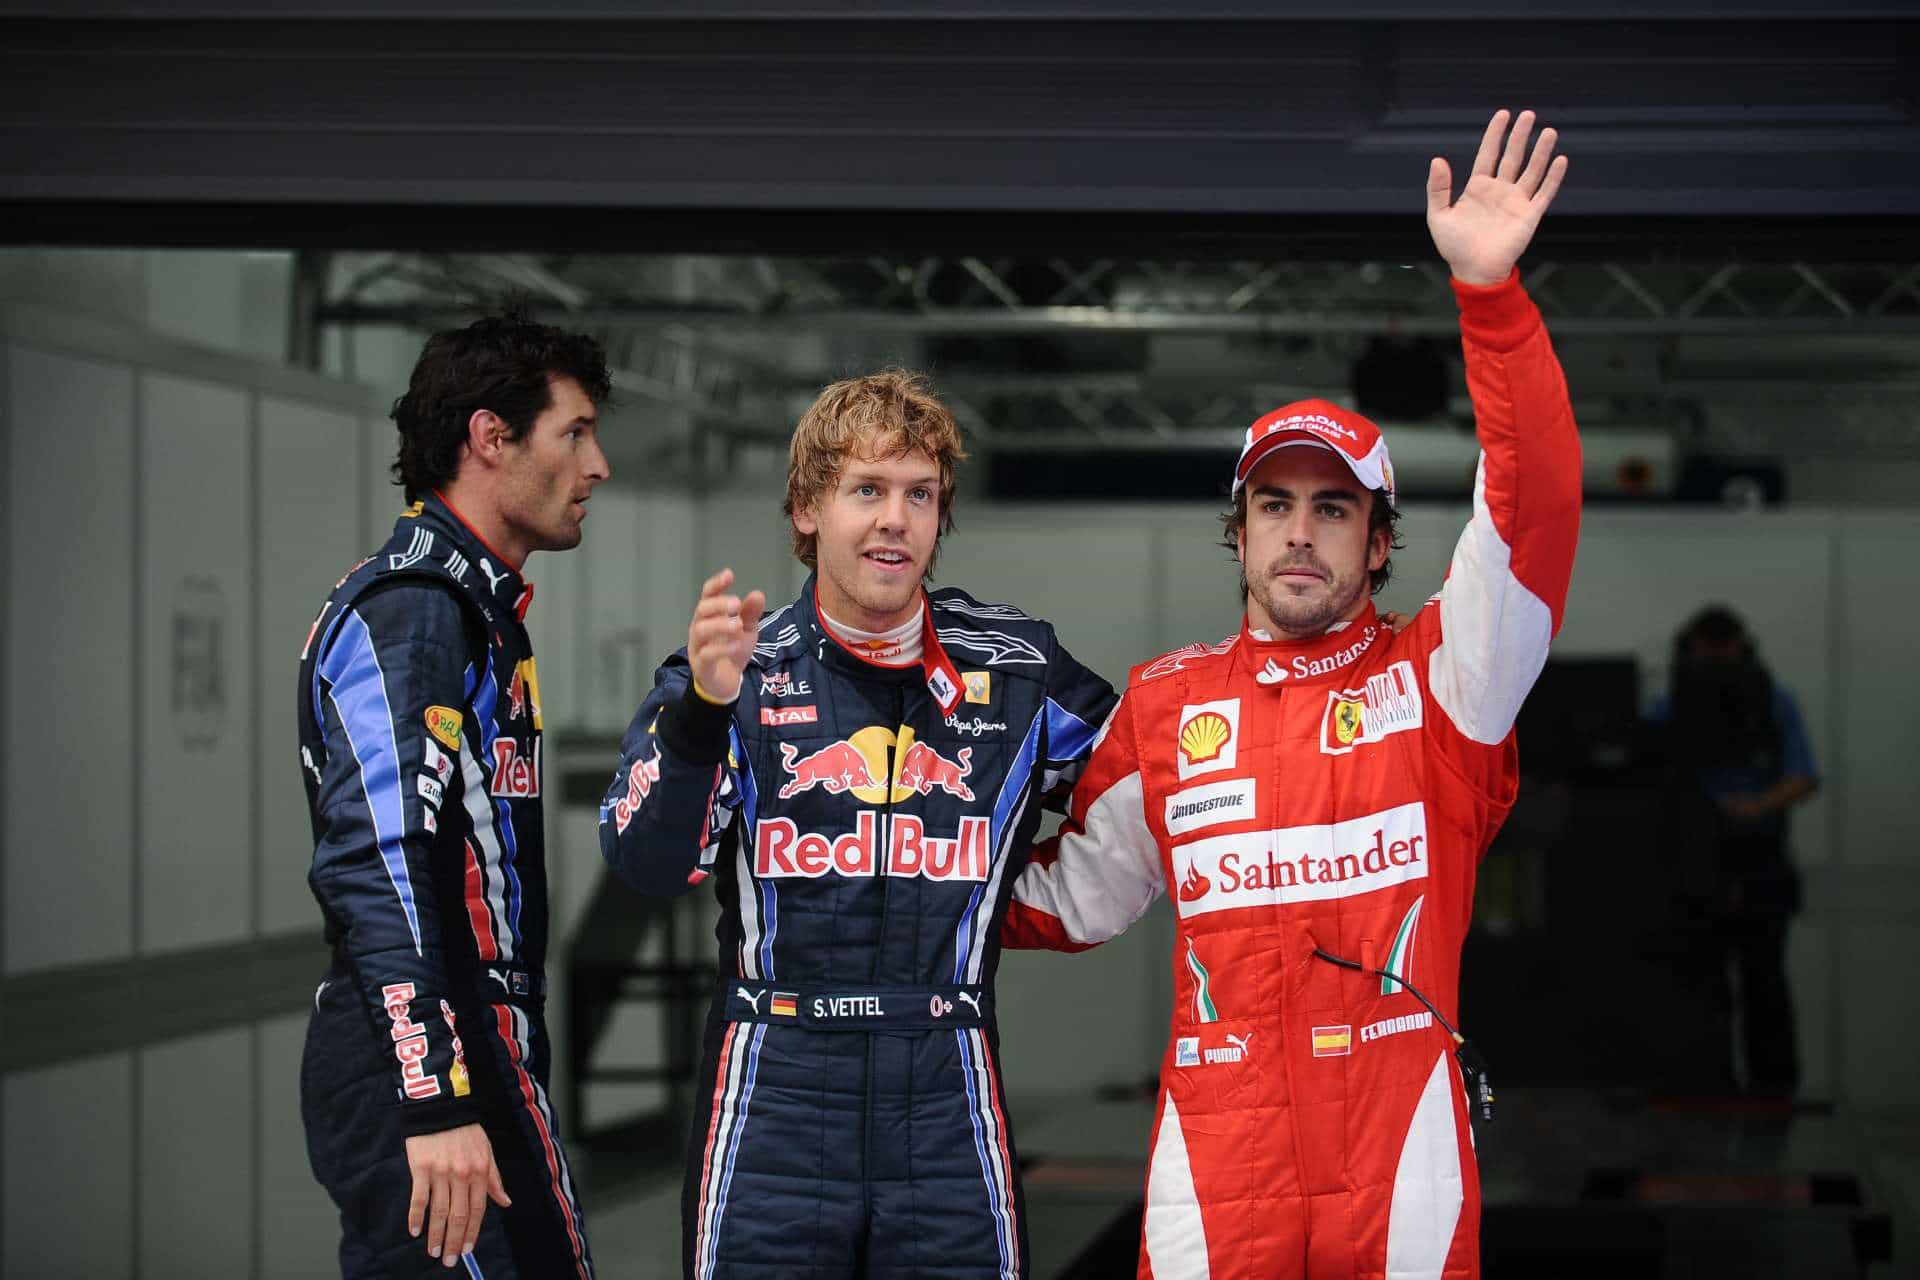 Korean GP F1 2020 qualifying top3 Vettel Webber Alonso Photo Ferrari